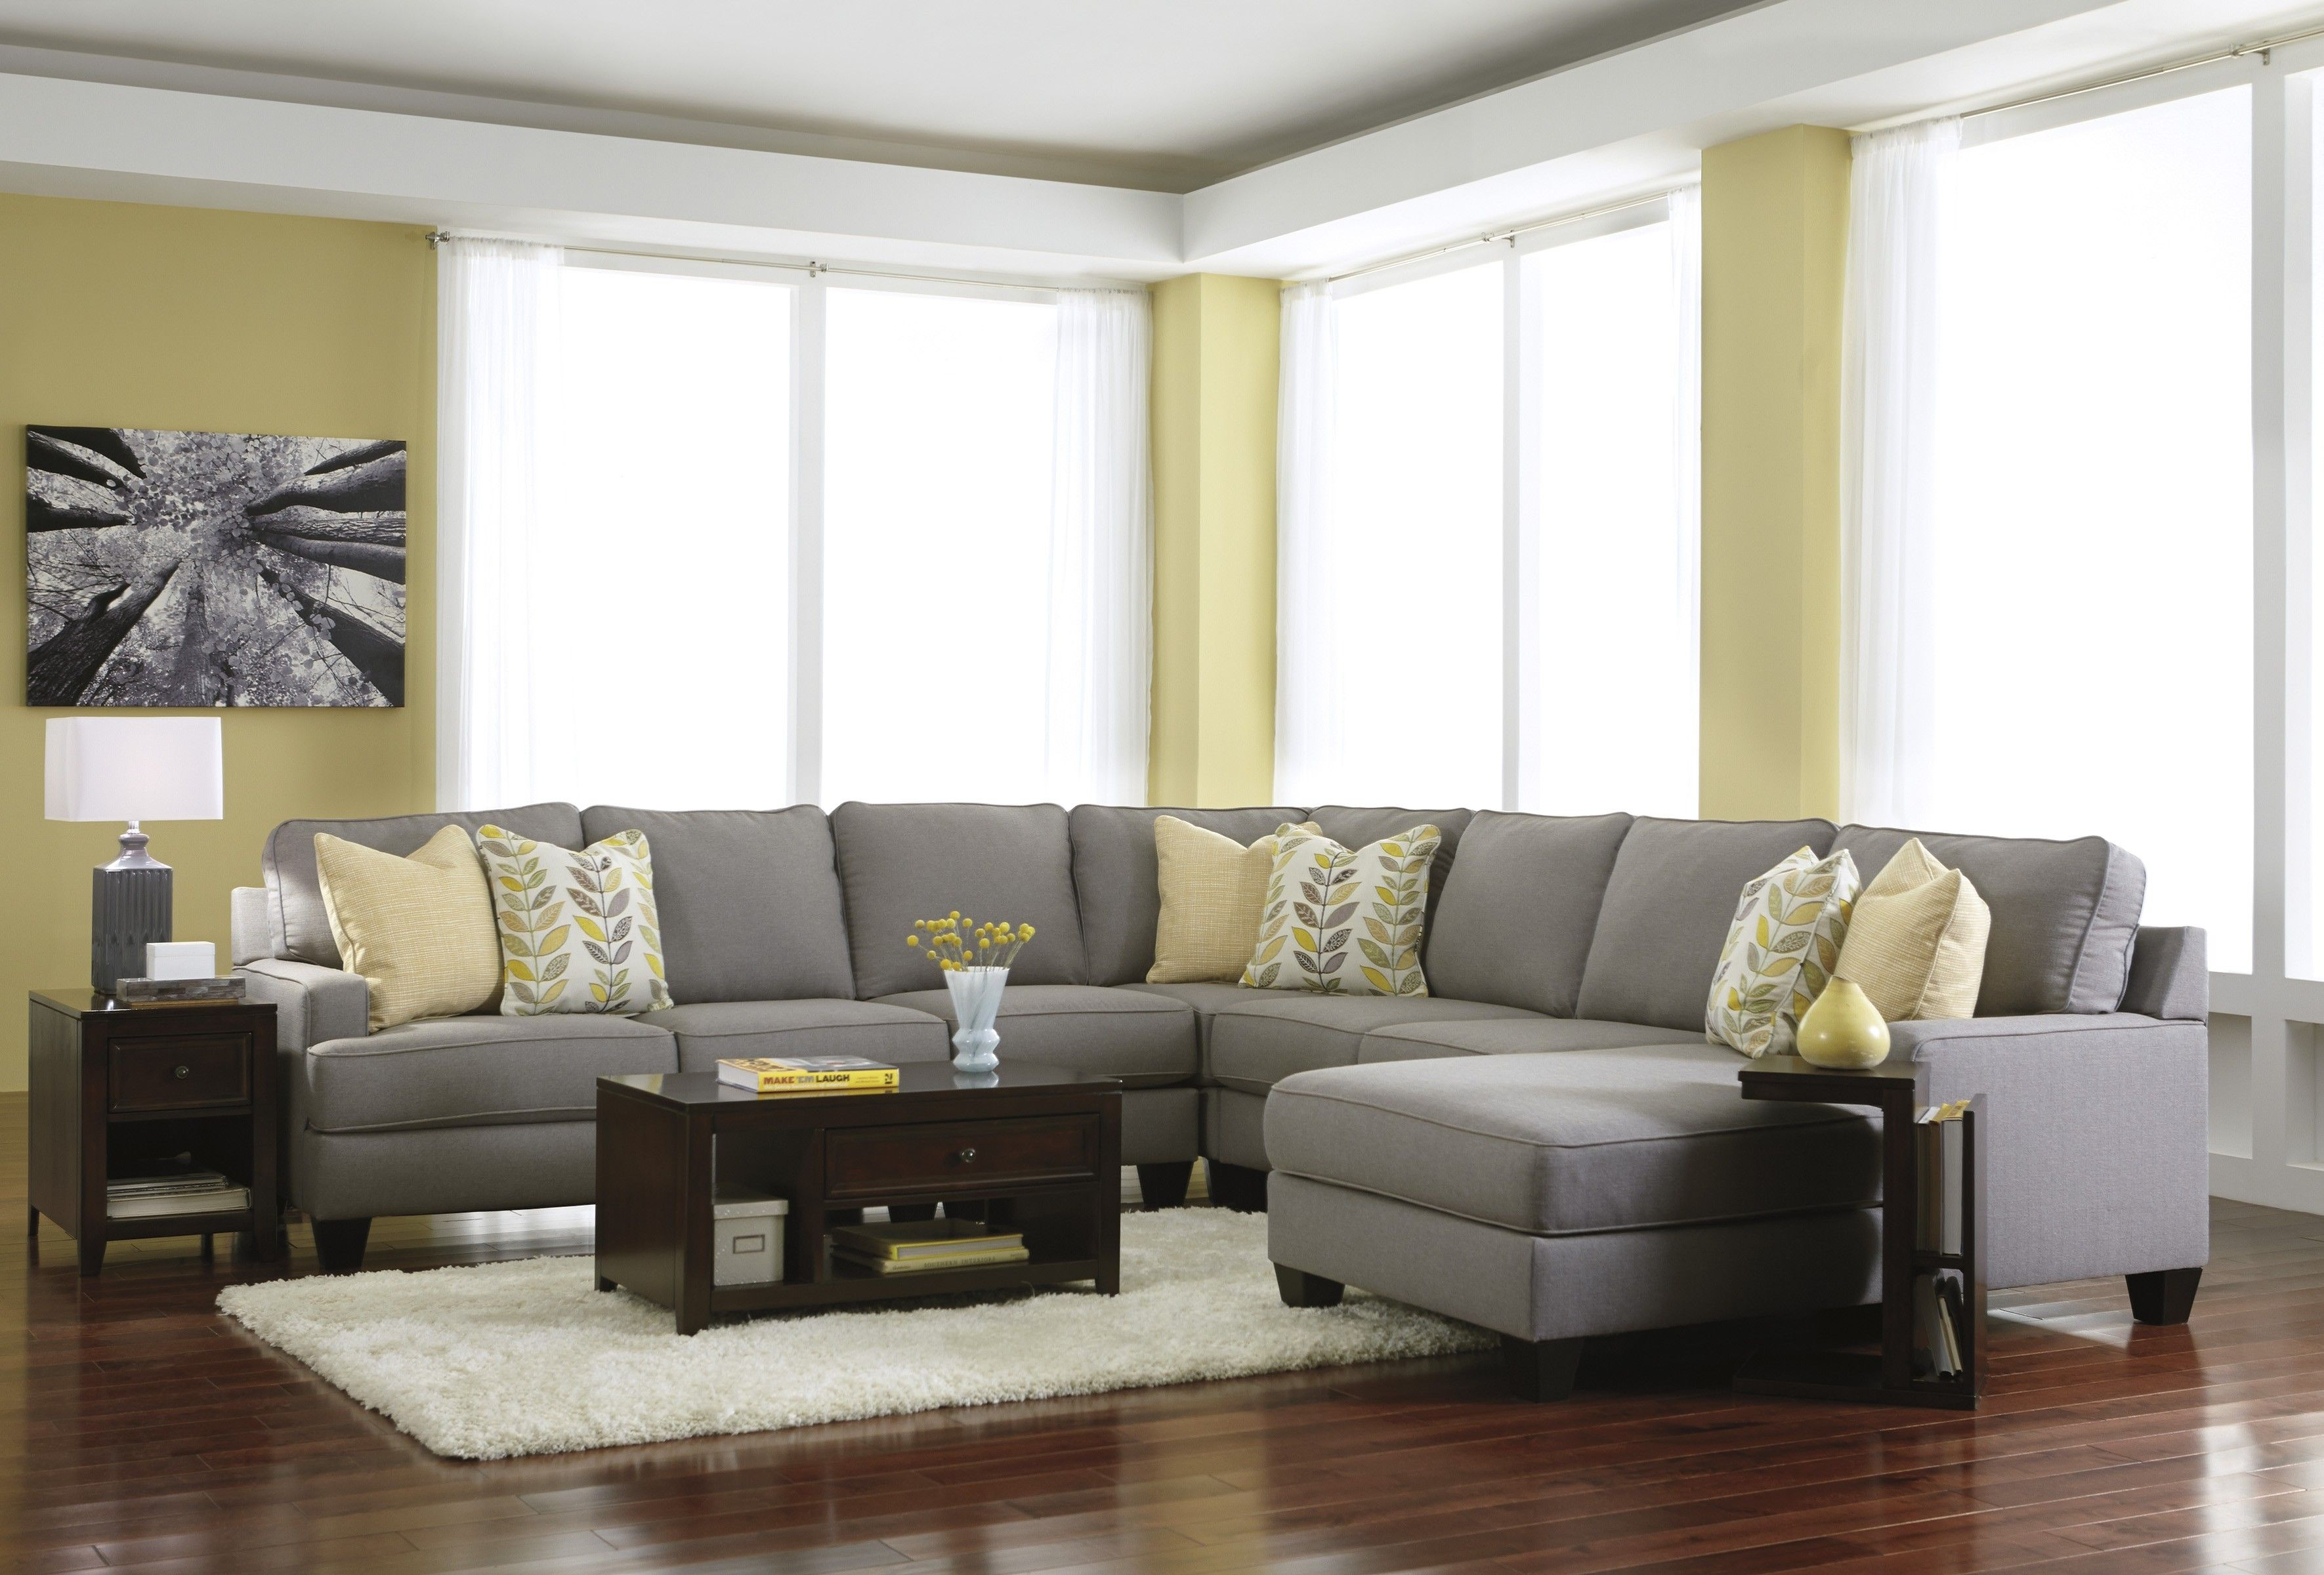 Chelsea 4-piece Sectional | Furniture | Pinterest | White ...